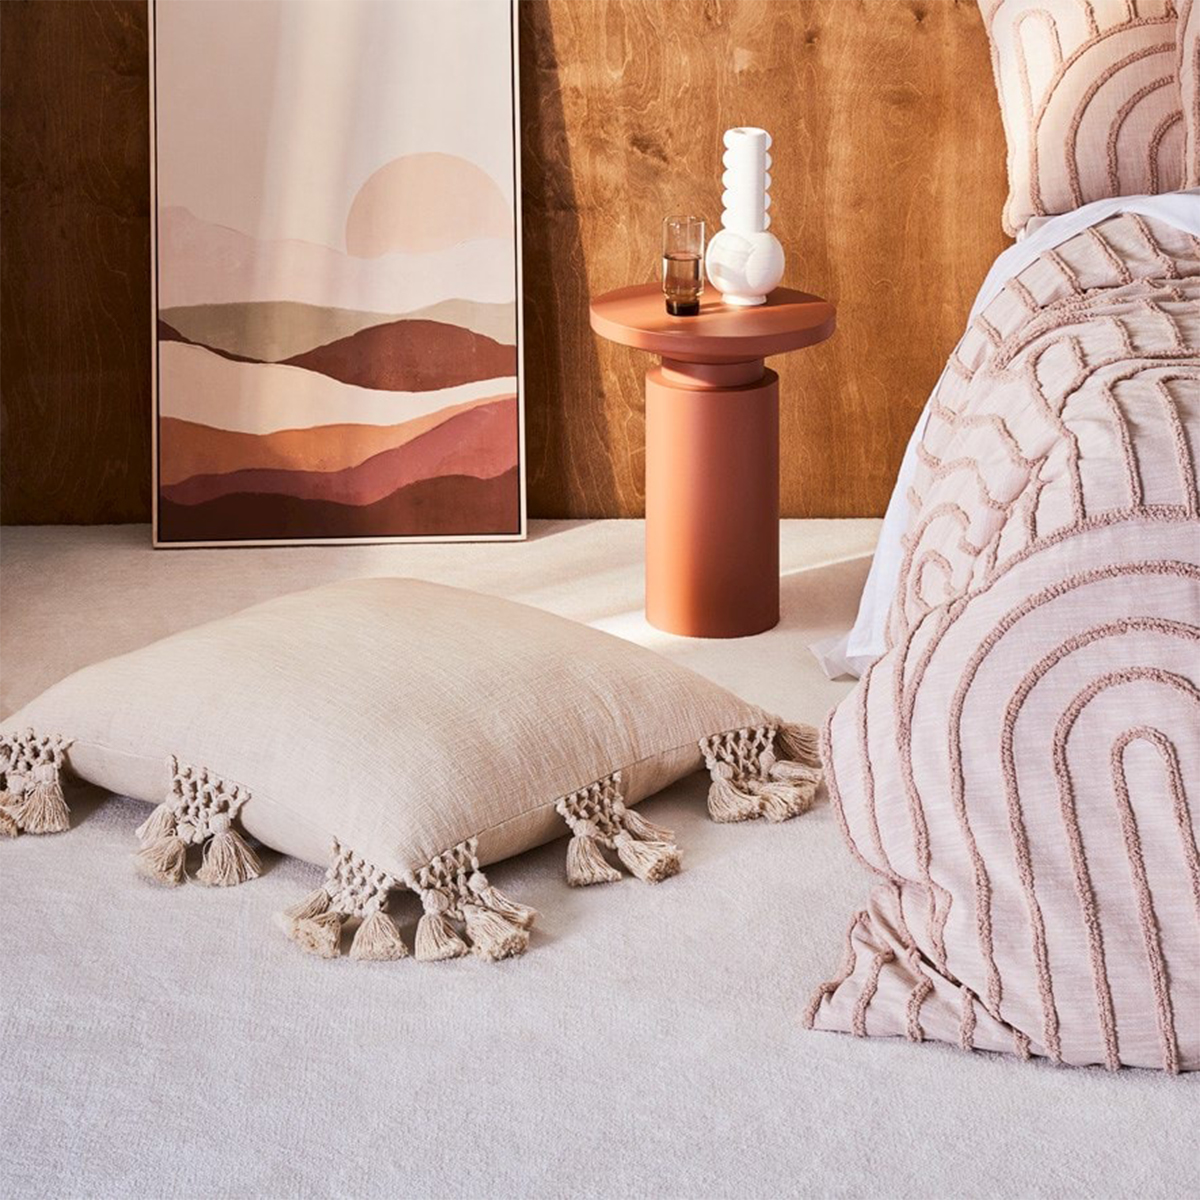 a bed, bedside table and a painting all in shades of dusty pink